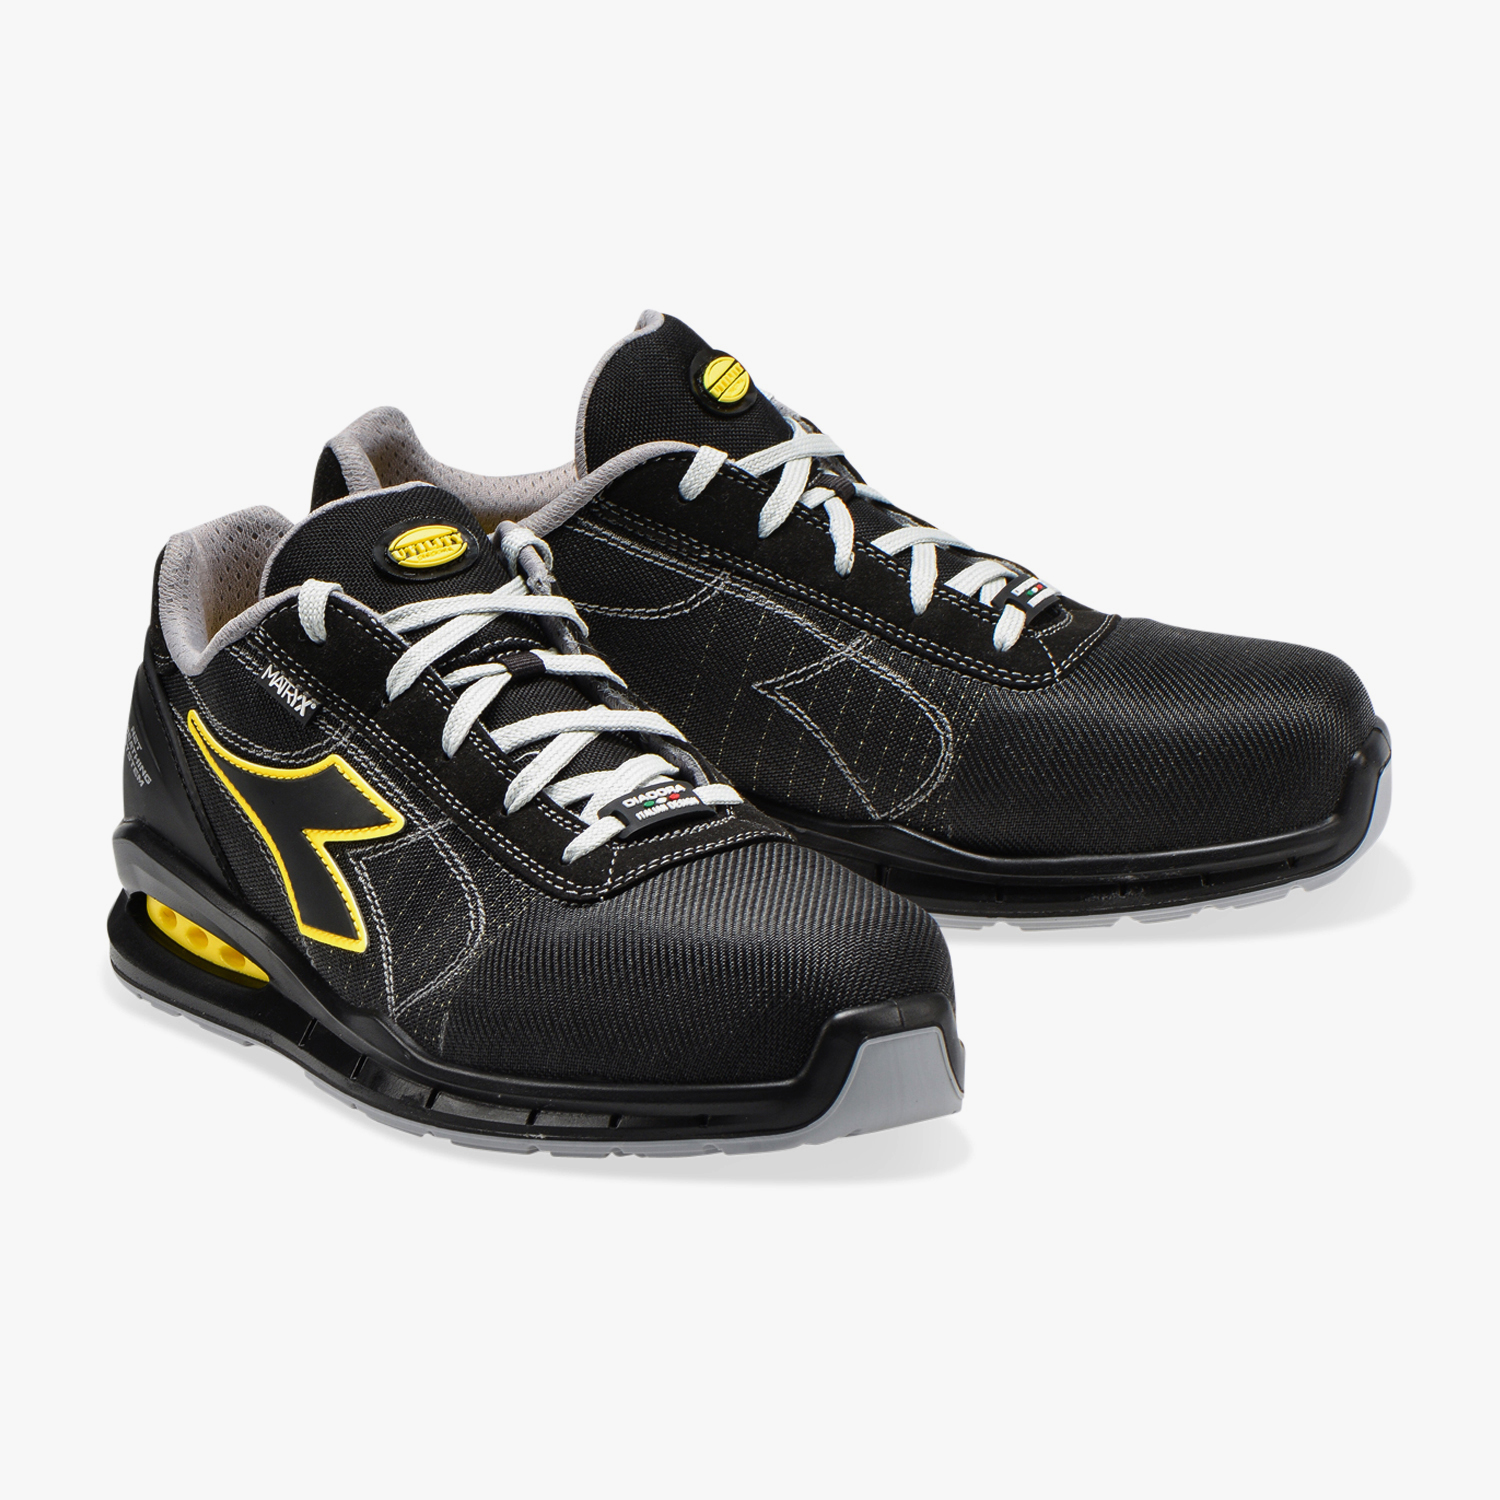 DIADORA RUN NET AIRBOX MATRYX LOW S3 SRC 43